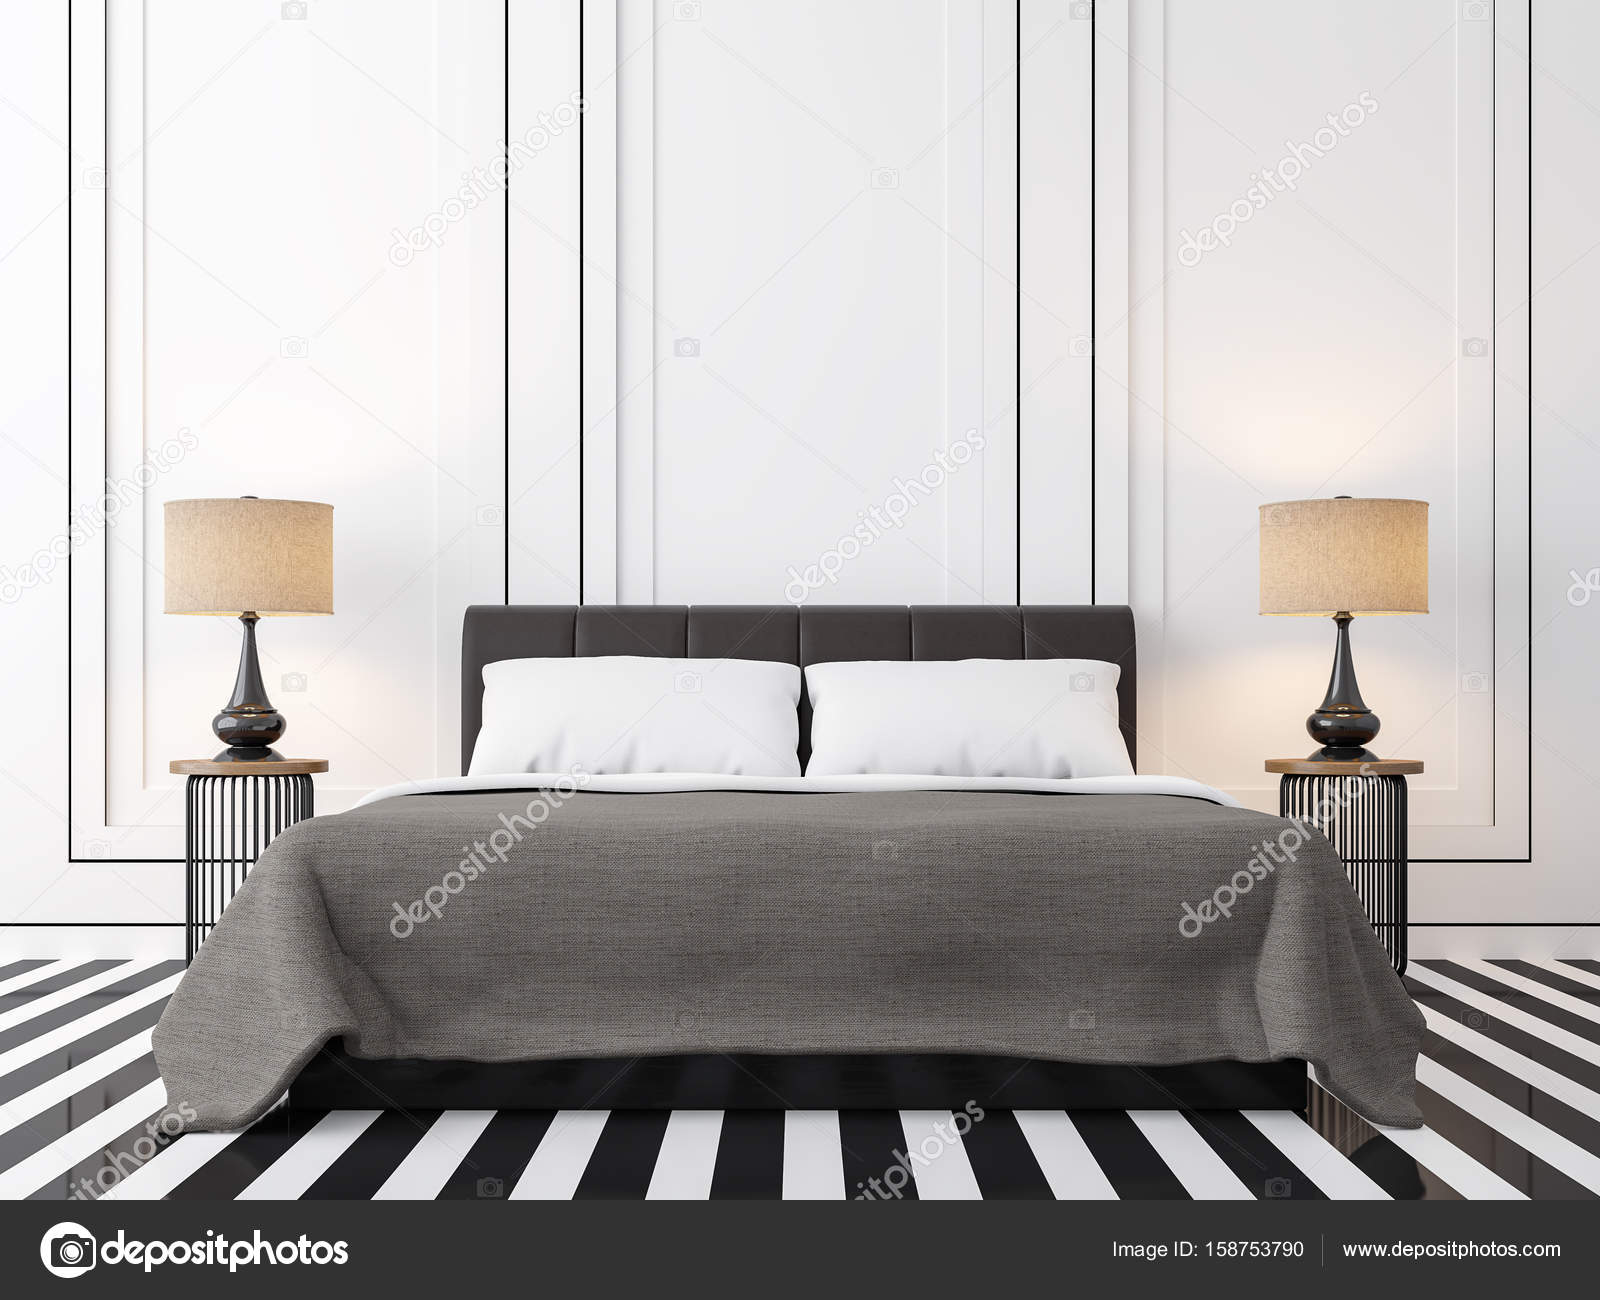 chambre vintage moderne noir et blanc des images de rendu 3d photographie onzon 158753790. Black Bedroom Furniture Sets. Home Design Ideas